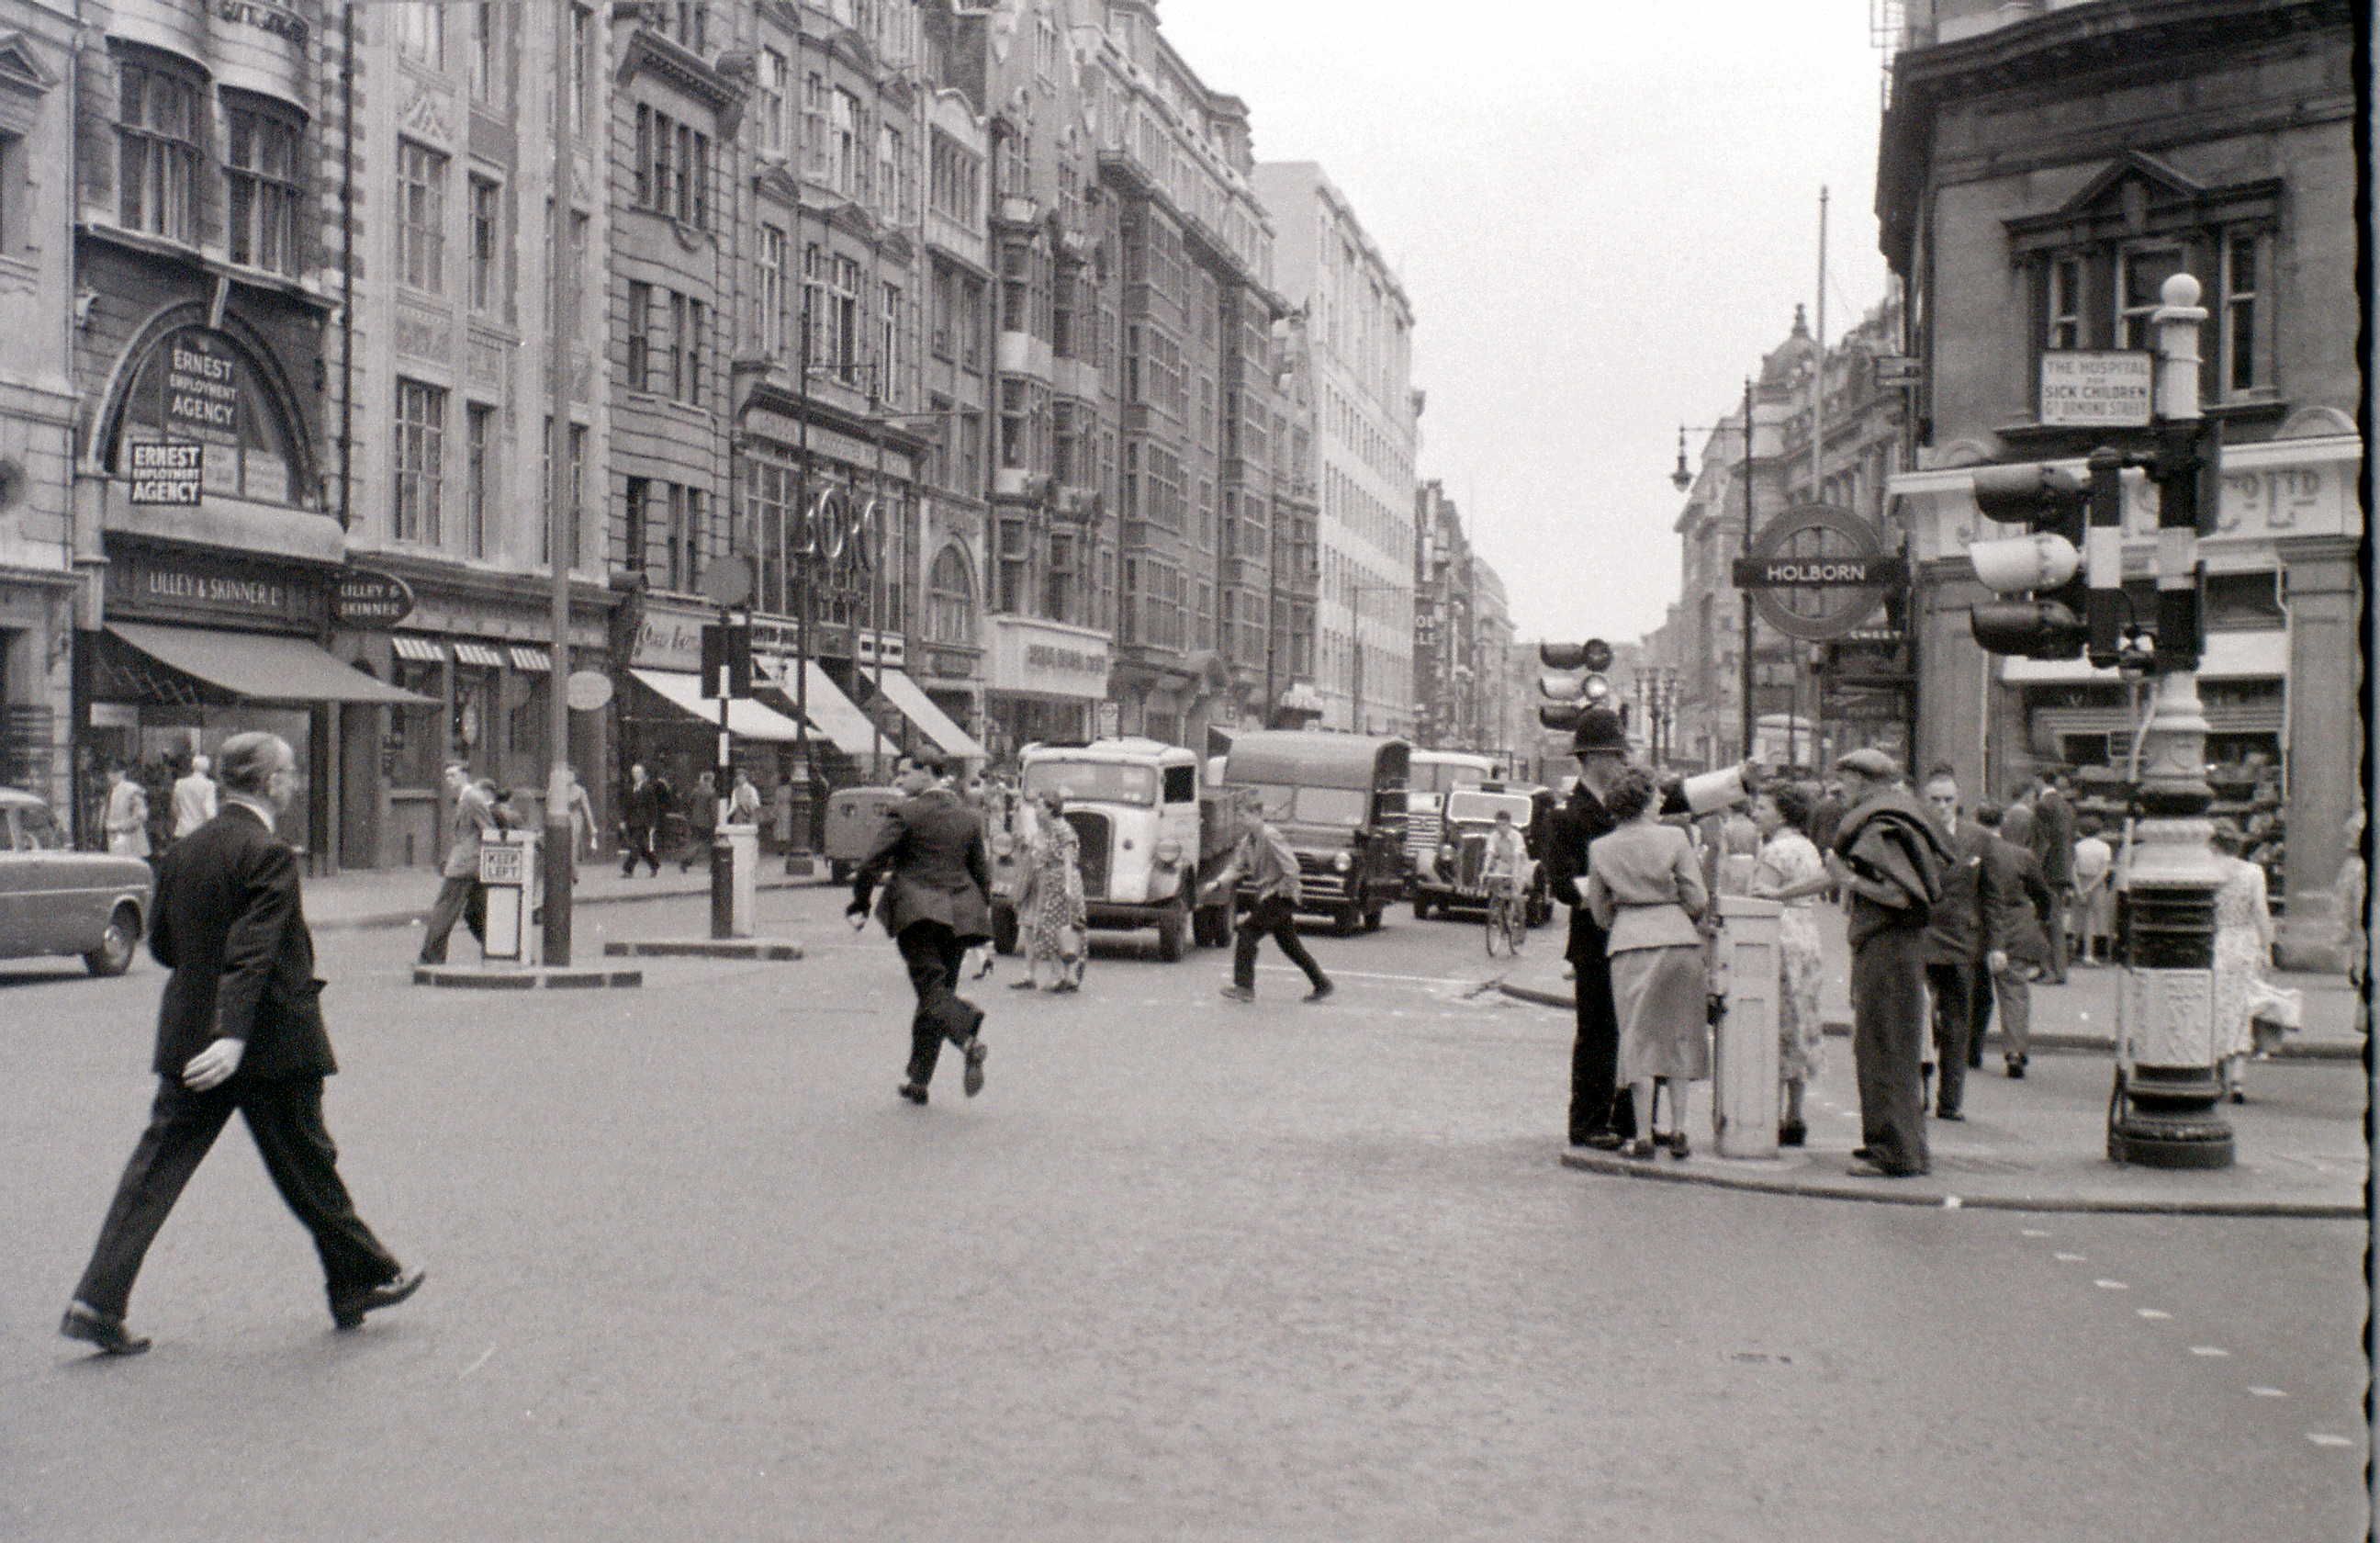 High Holborn, London, 2 August 1955.